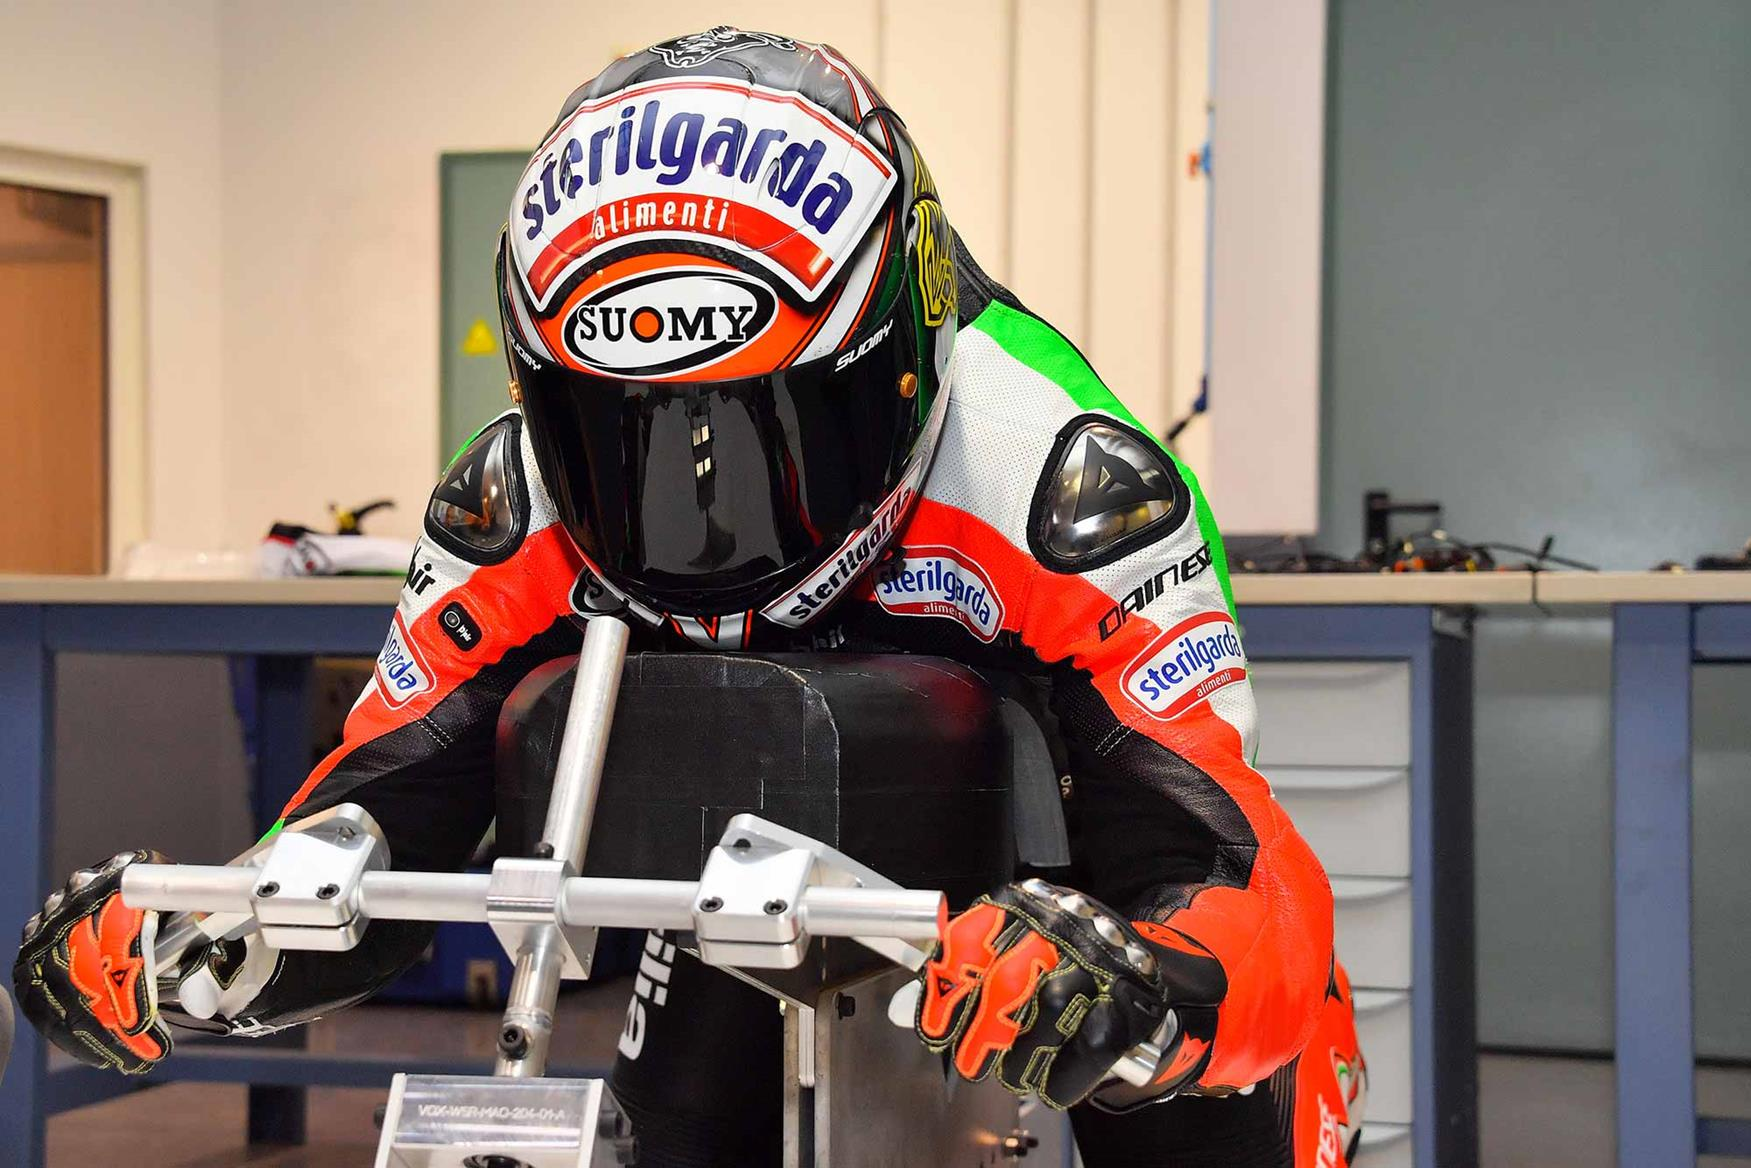 Max Biaggi gets measured up for electric speed record attempt